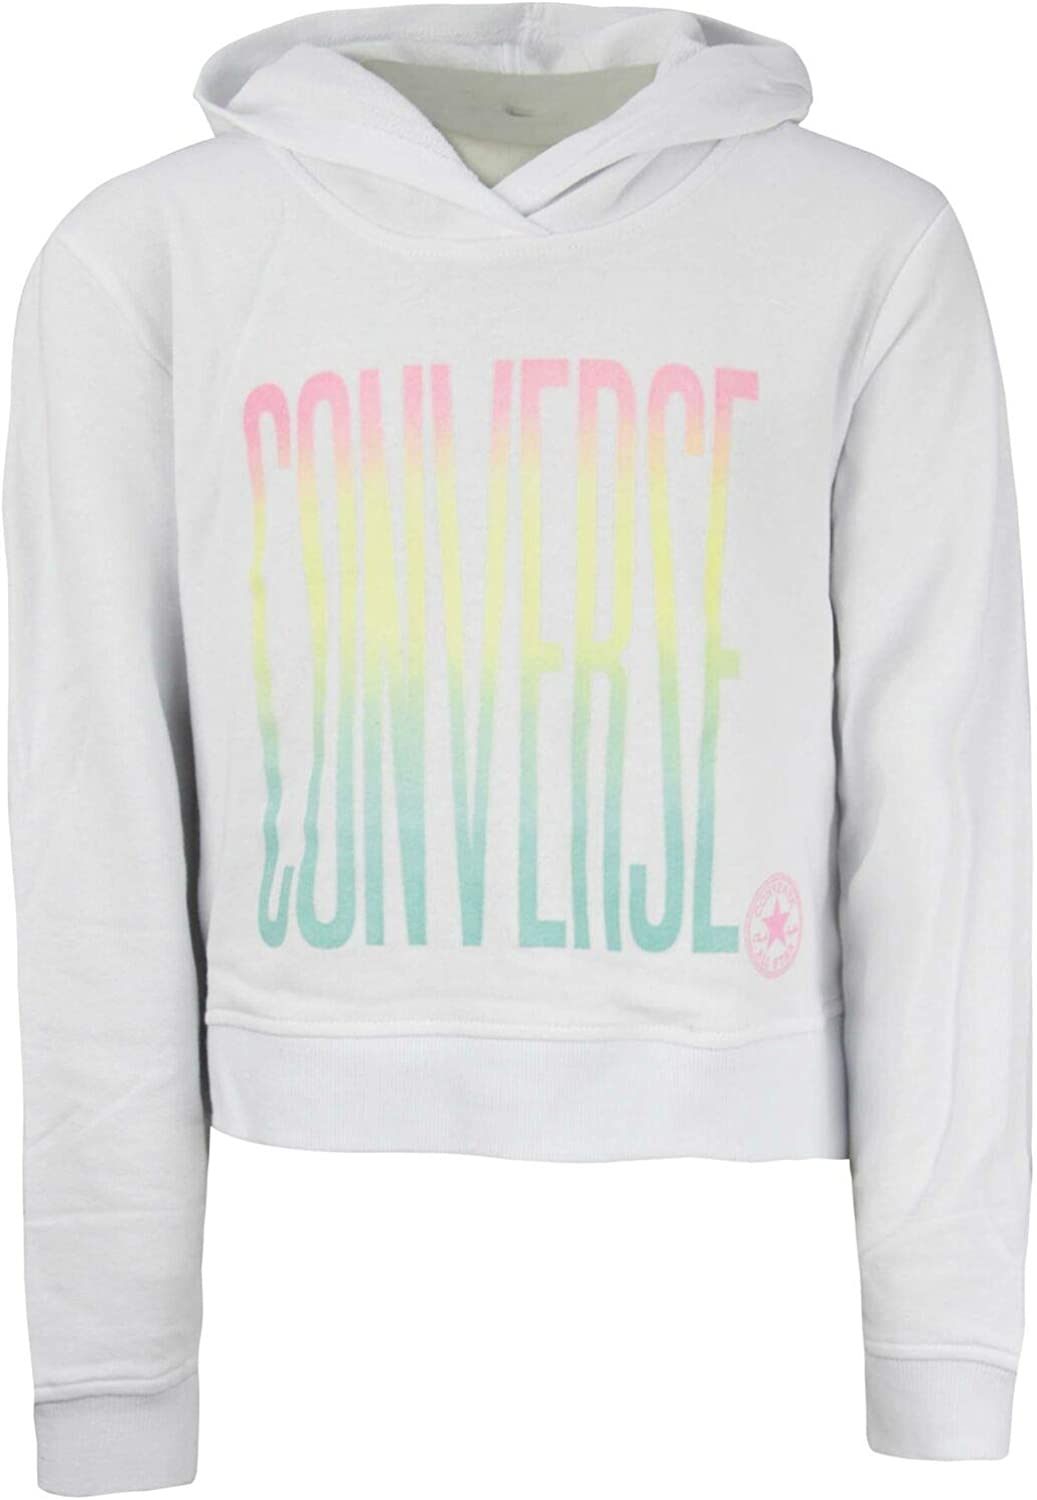 Converse Girls Ombre Cropped Pullover Tracksuit